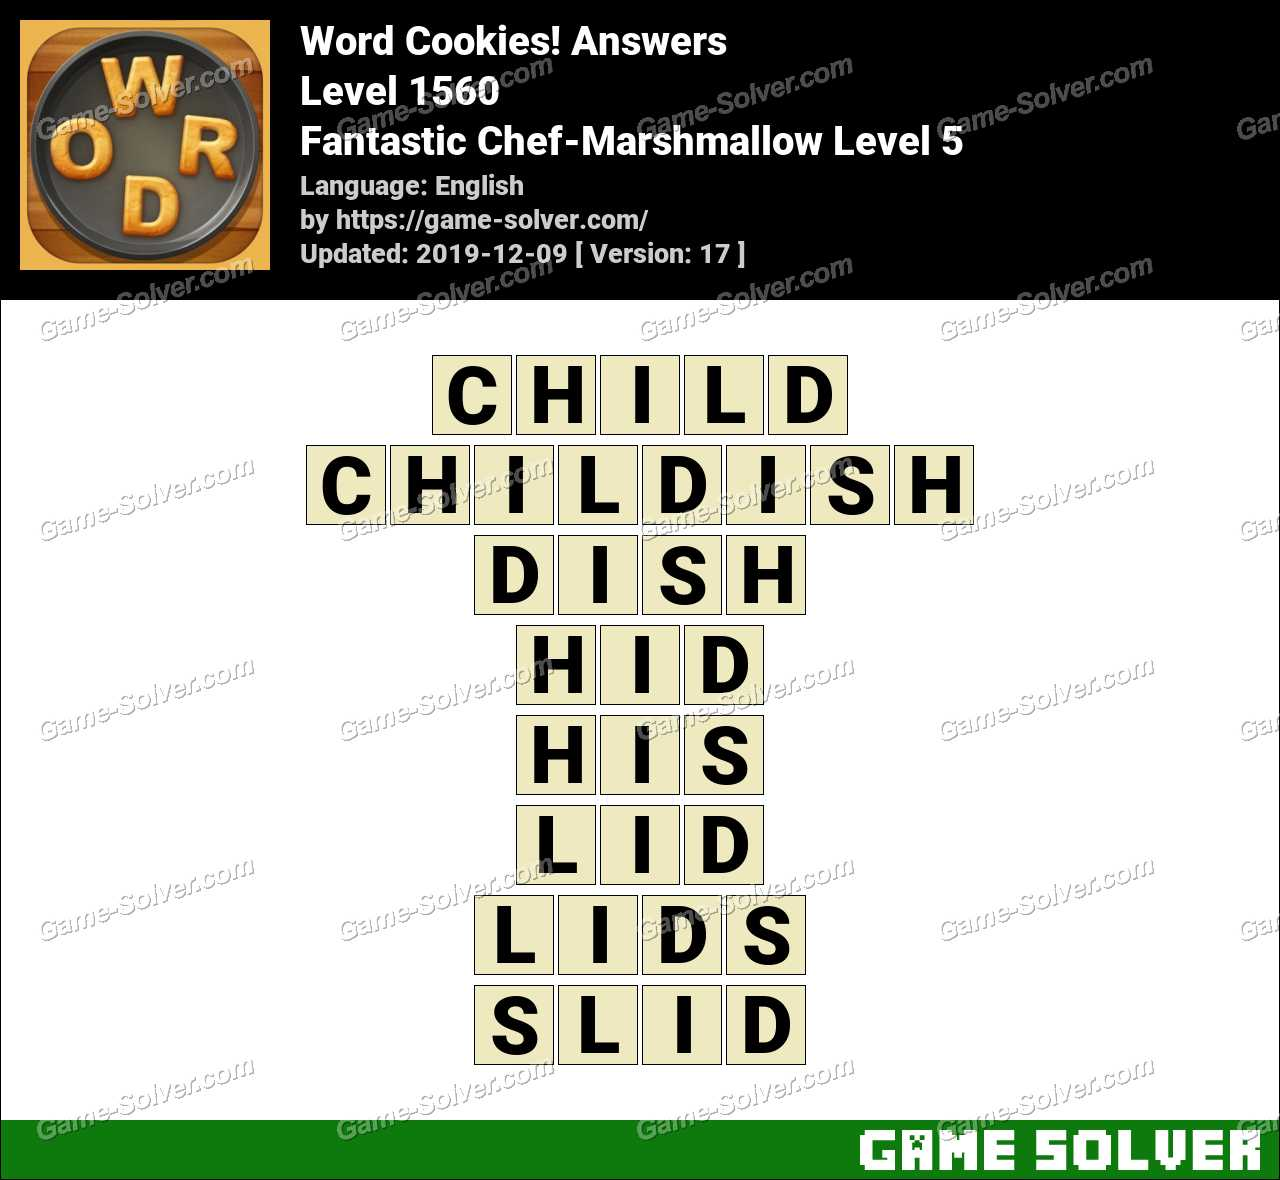 Word Cookies Fantastic Chef-Marshmallow Level 5 Answers